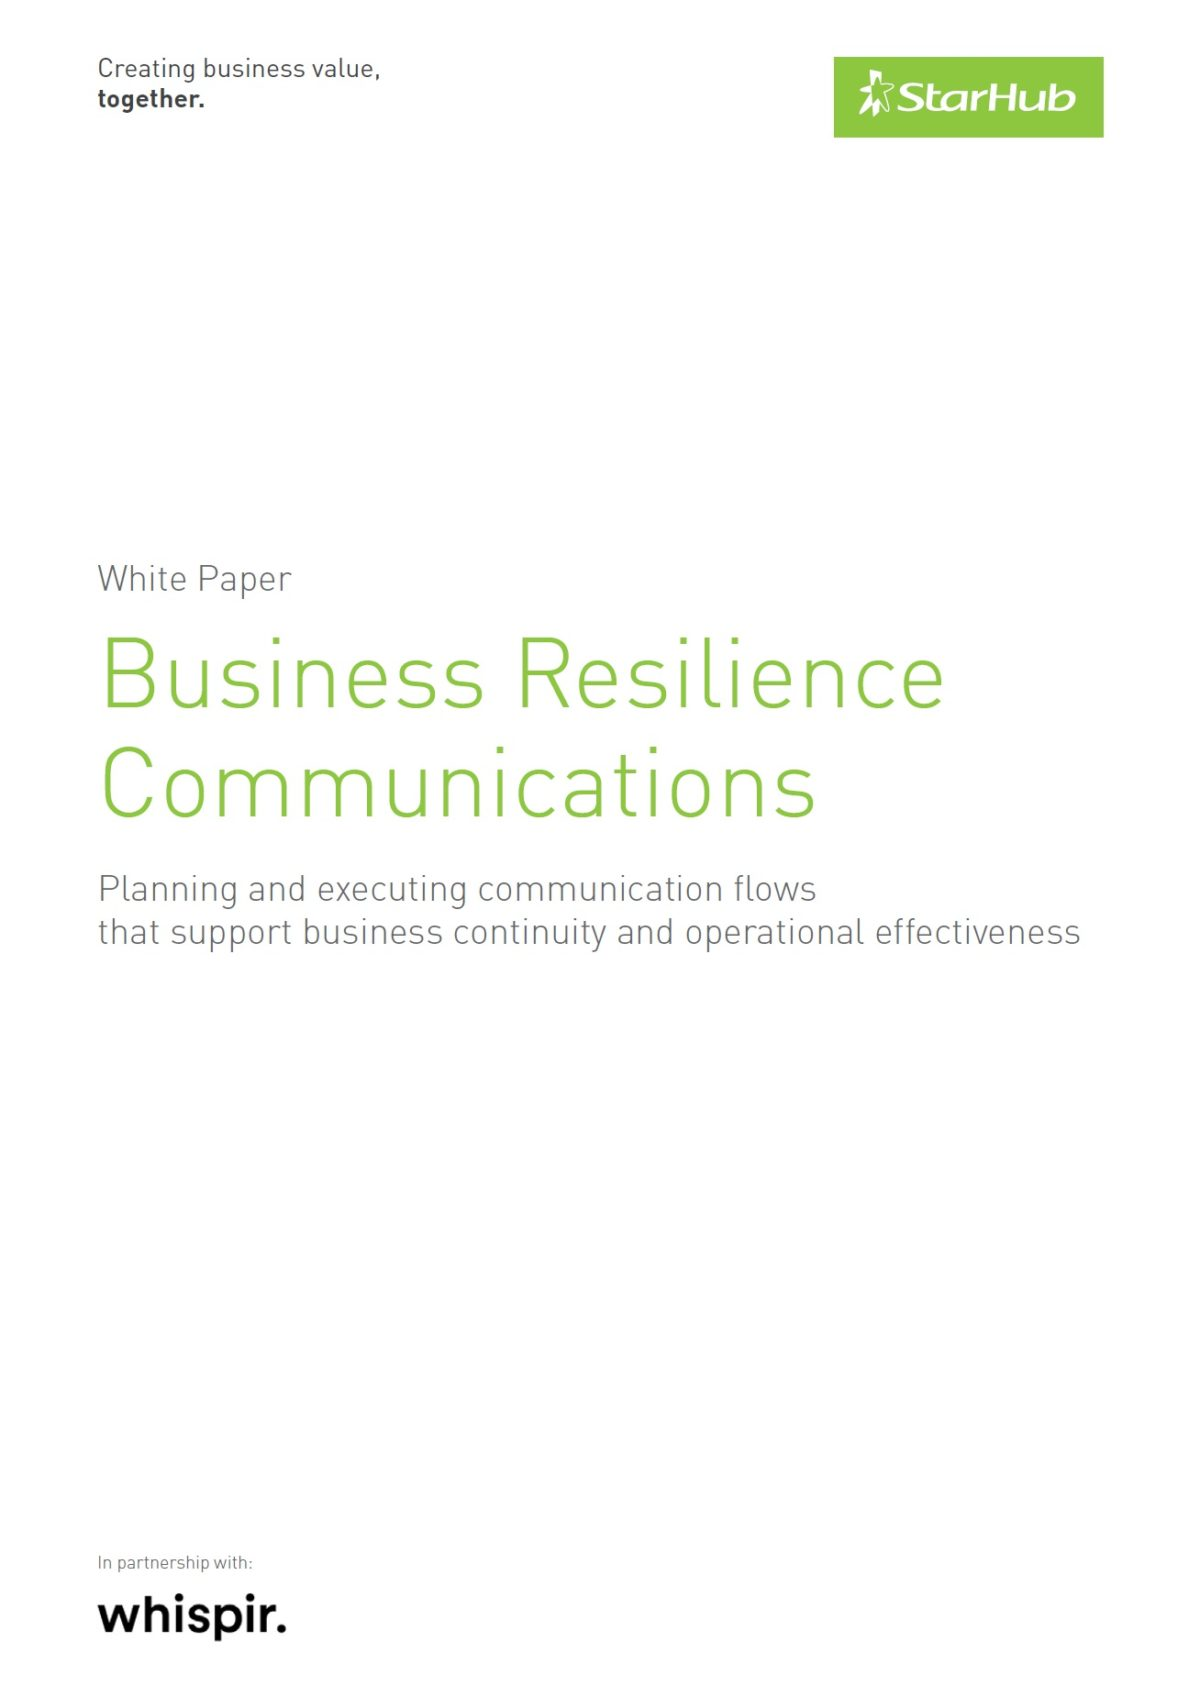 StarHub (SG) Whitepaper - Business Resilience Communications